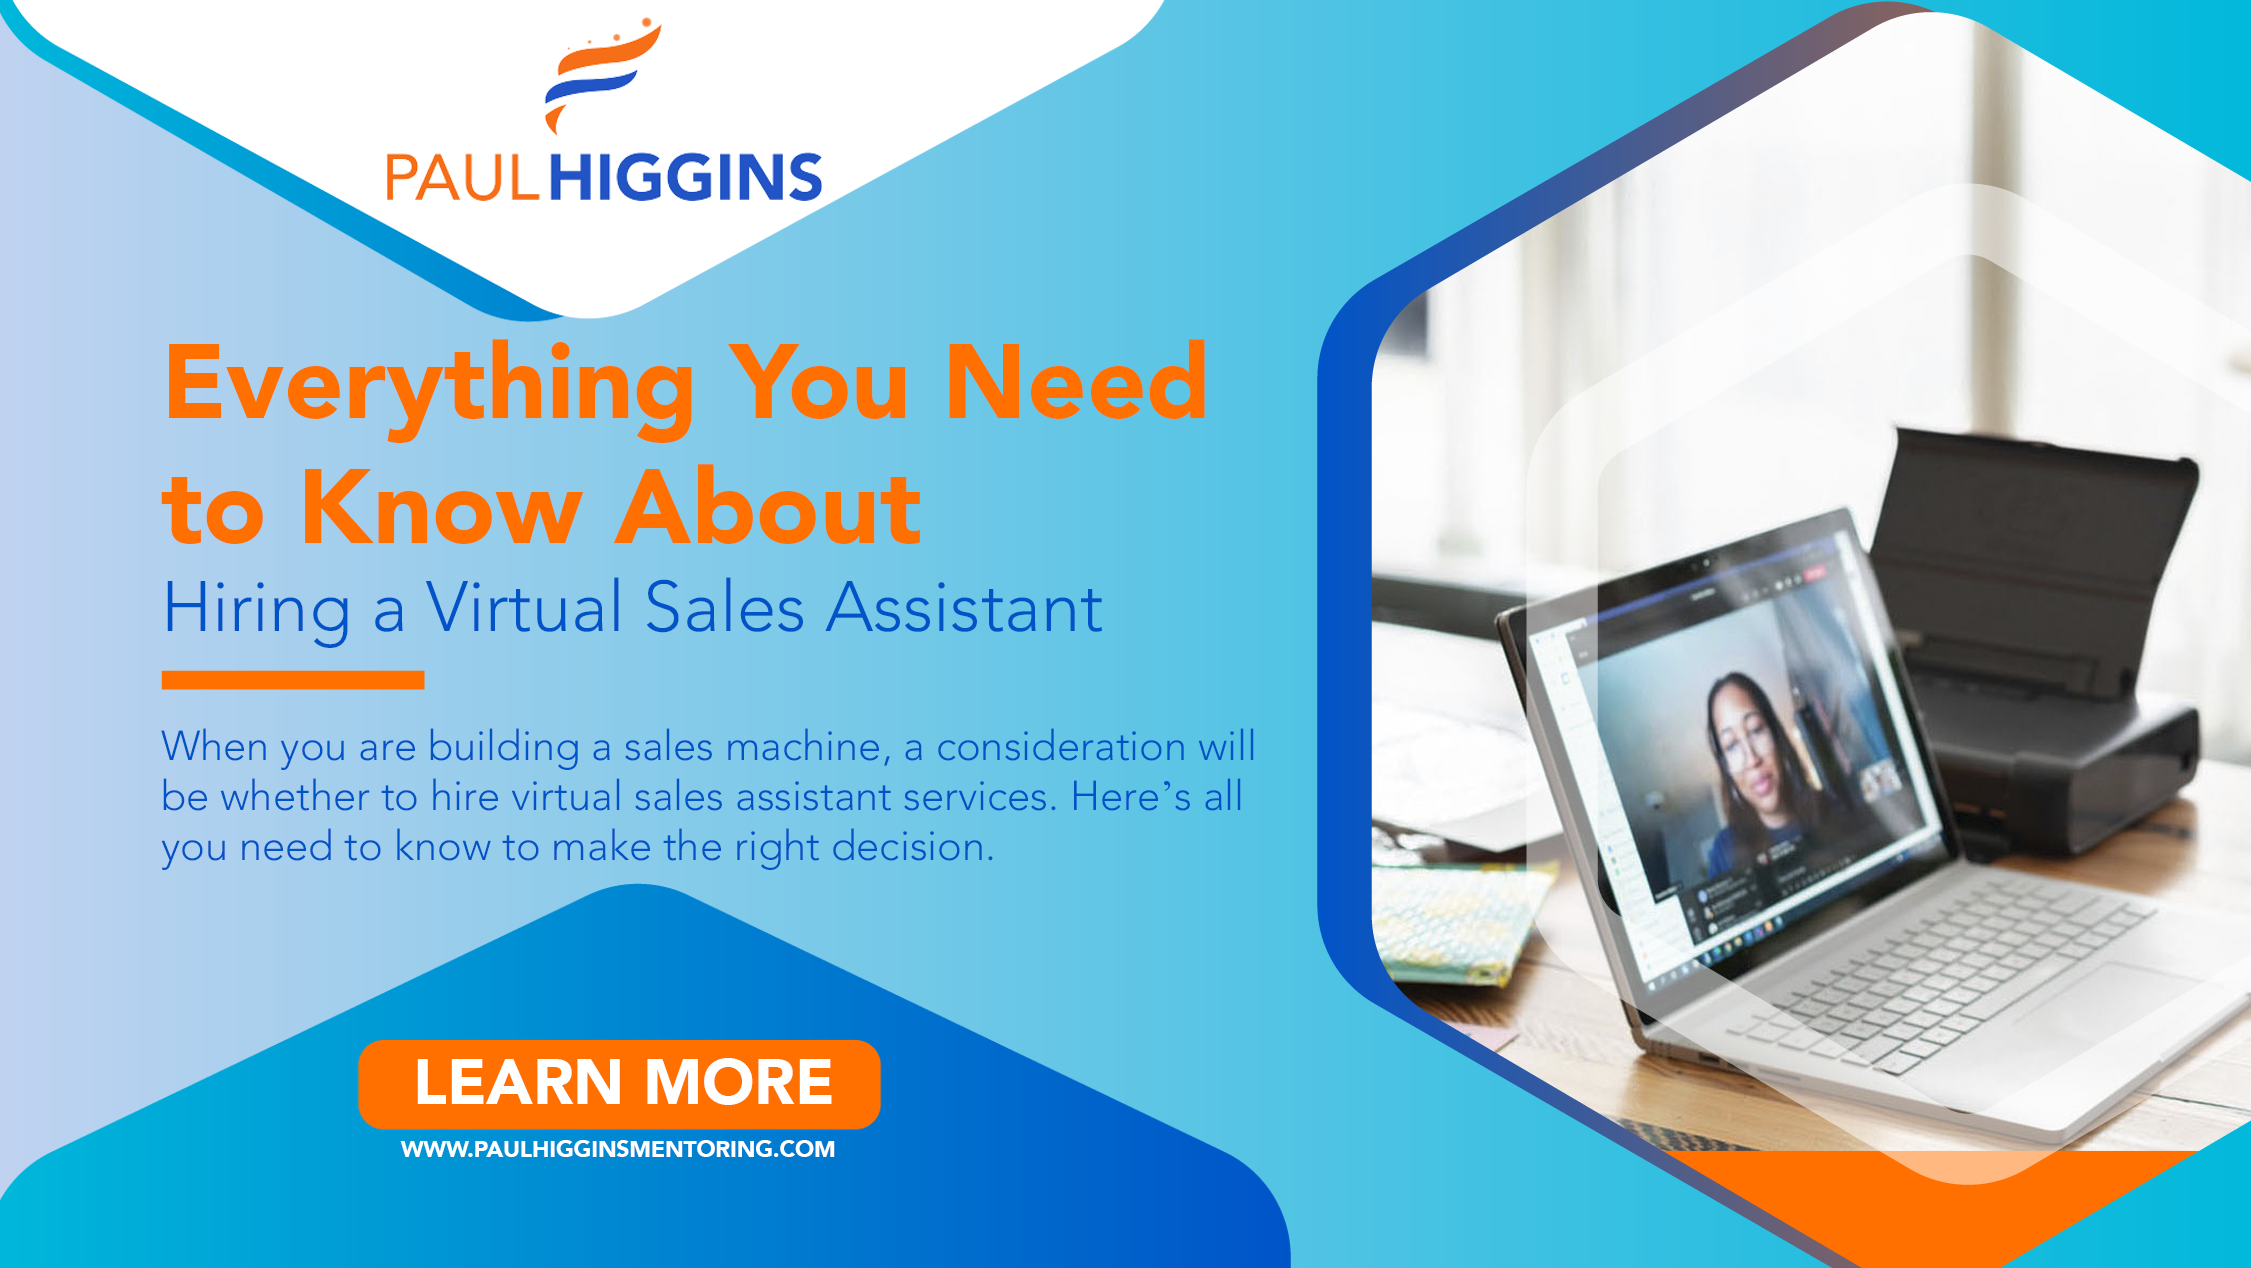 When you are building a sales machine, a consideration will be whether to hire virtual sales assistant services. Here's all you need to know to make the right decision.